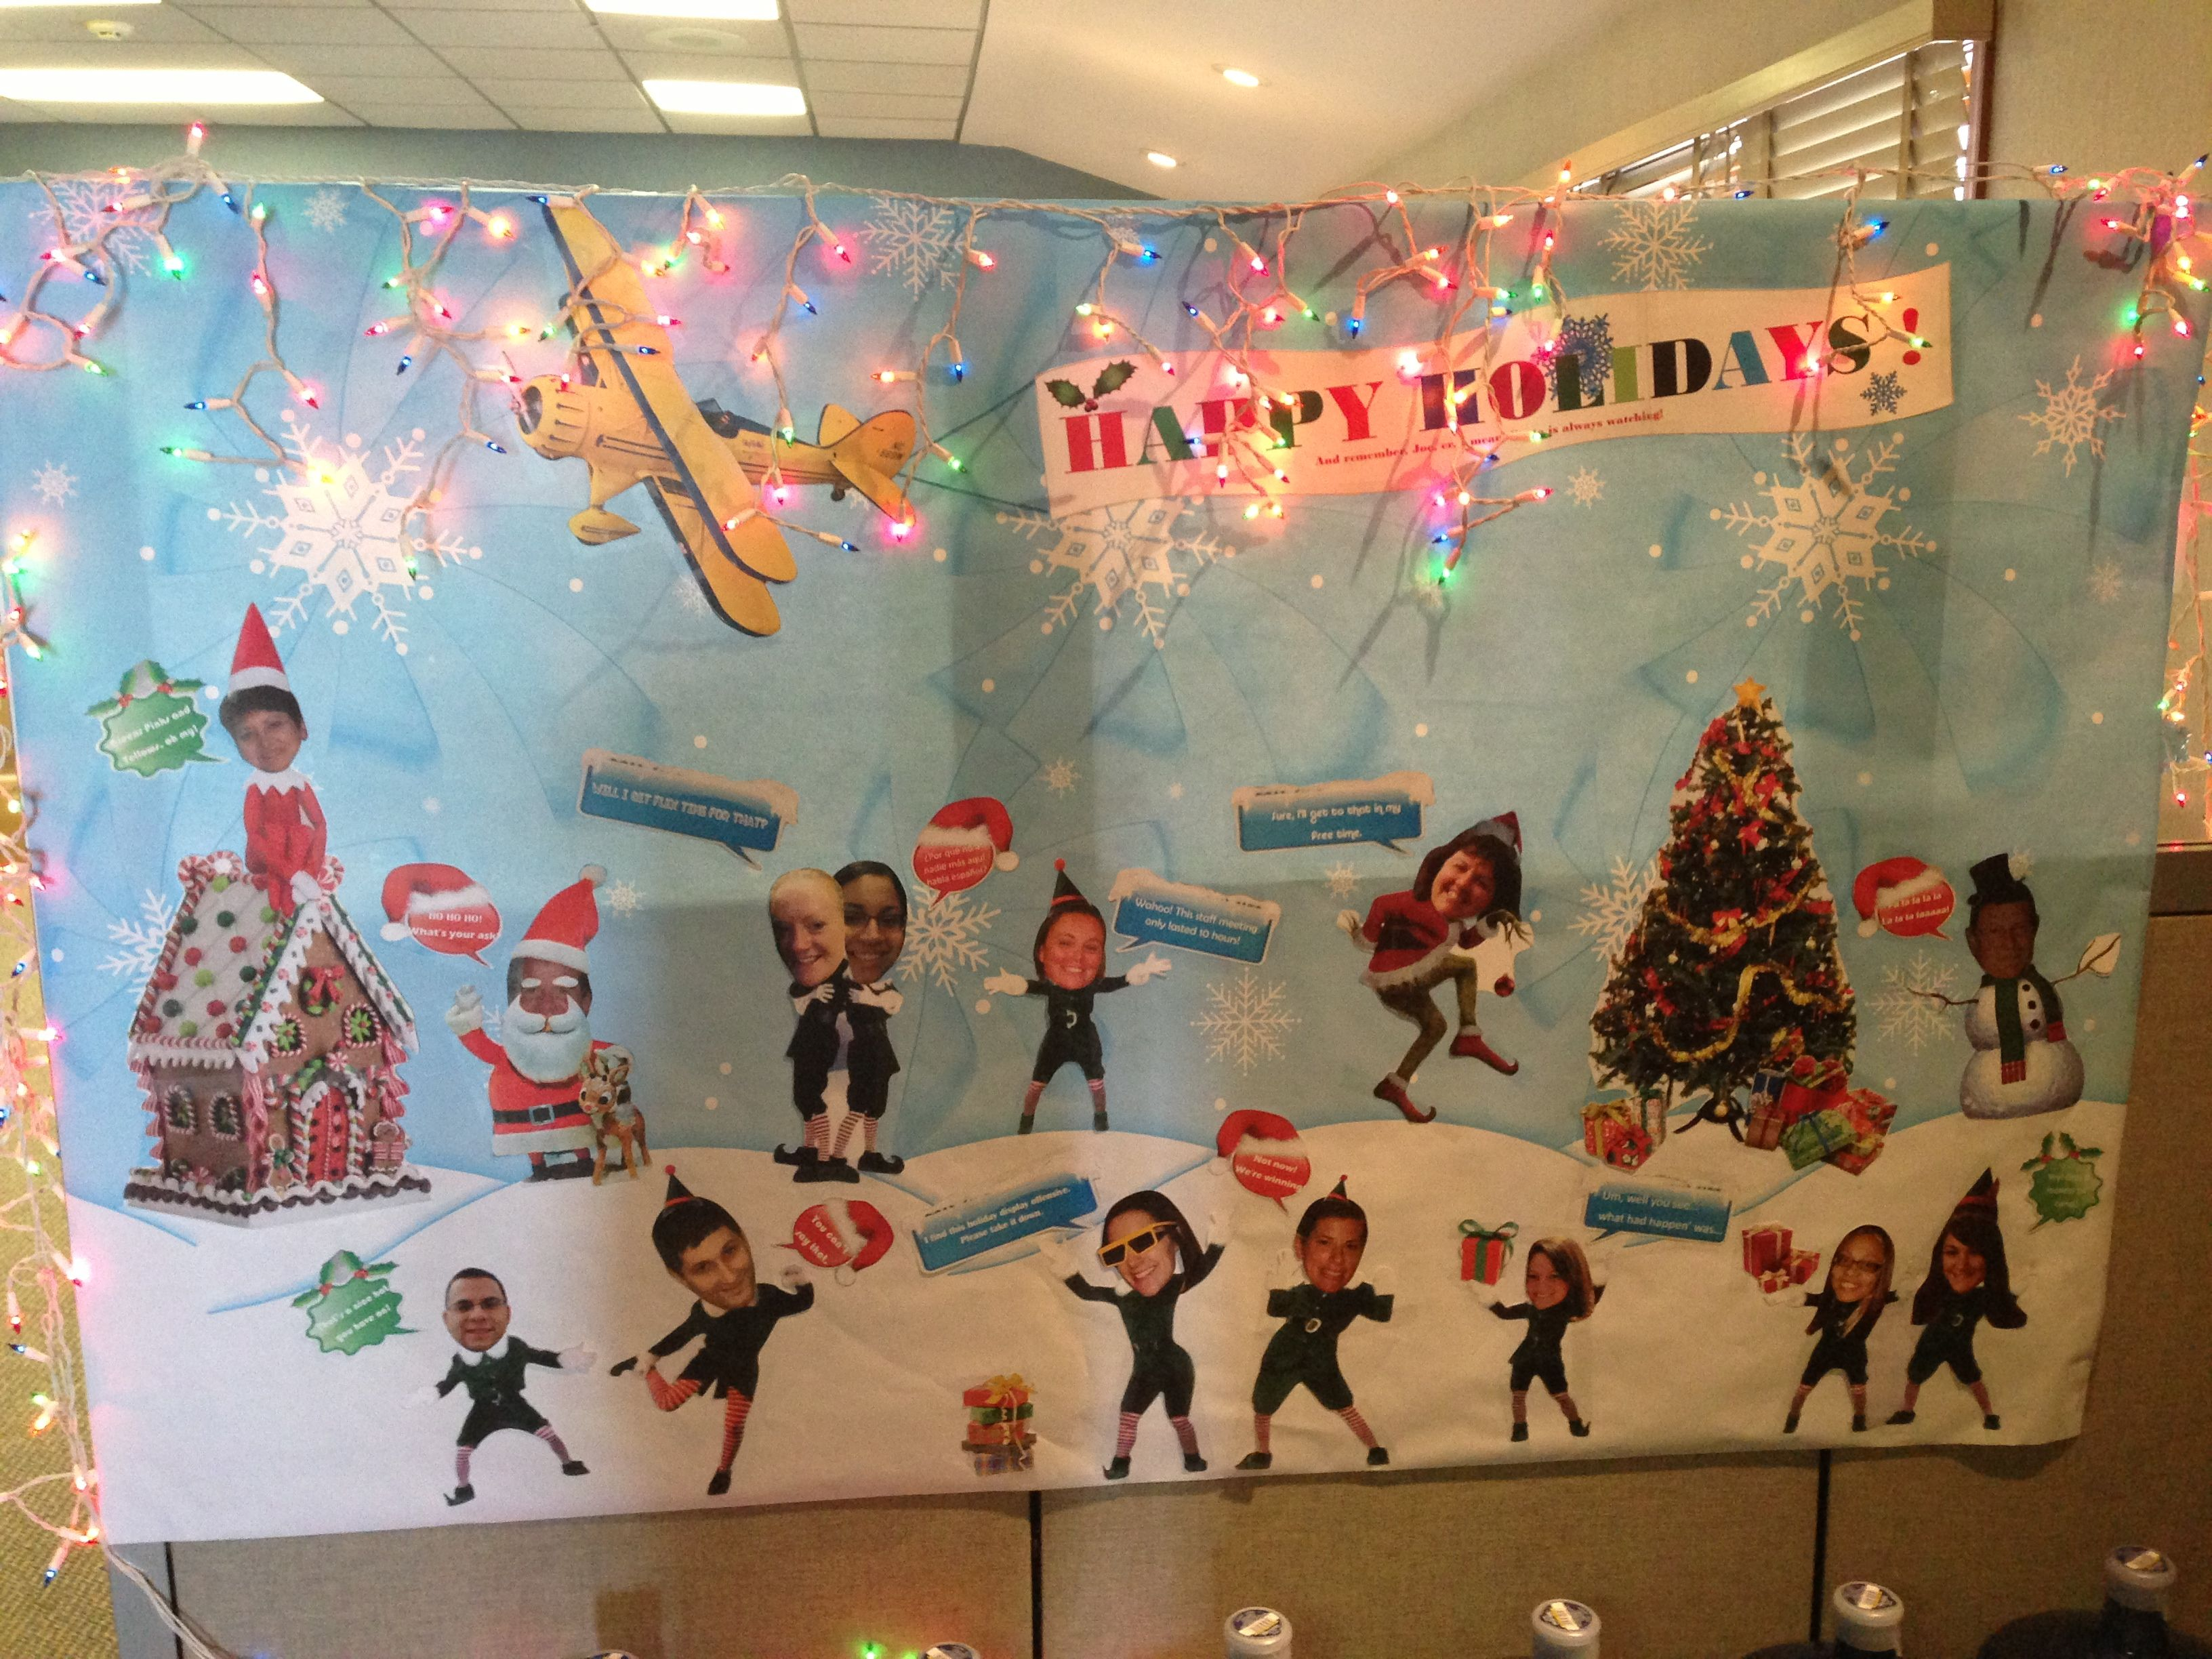 Cubicle office mural holiday decoration holiday fun for Cubicle decoration xmas